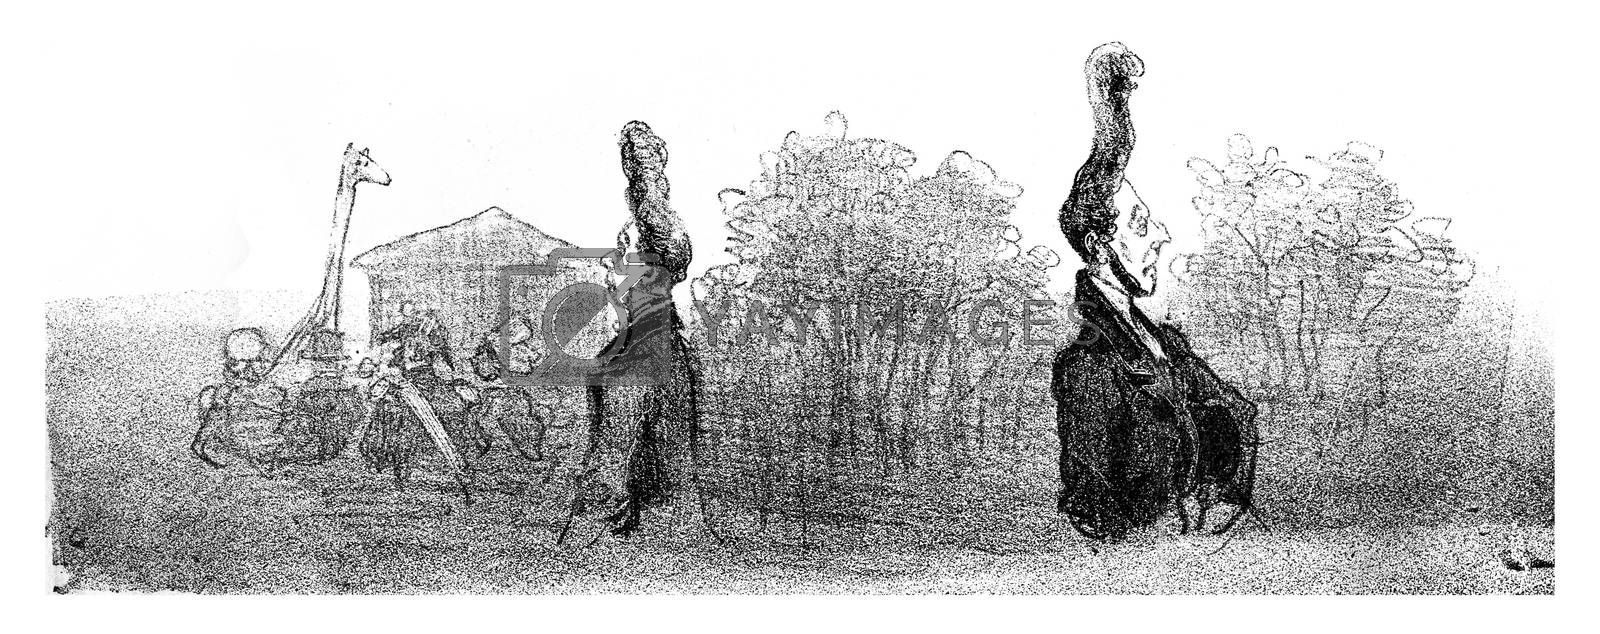 Giraffe hairstyle, vintage engraved illustration. From The Tortures of Fashion.